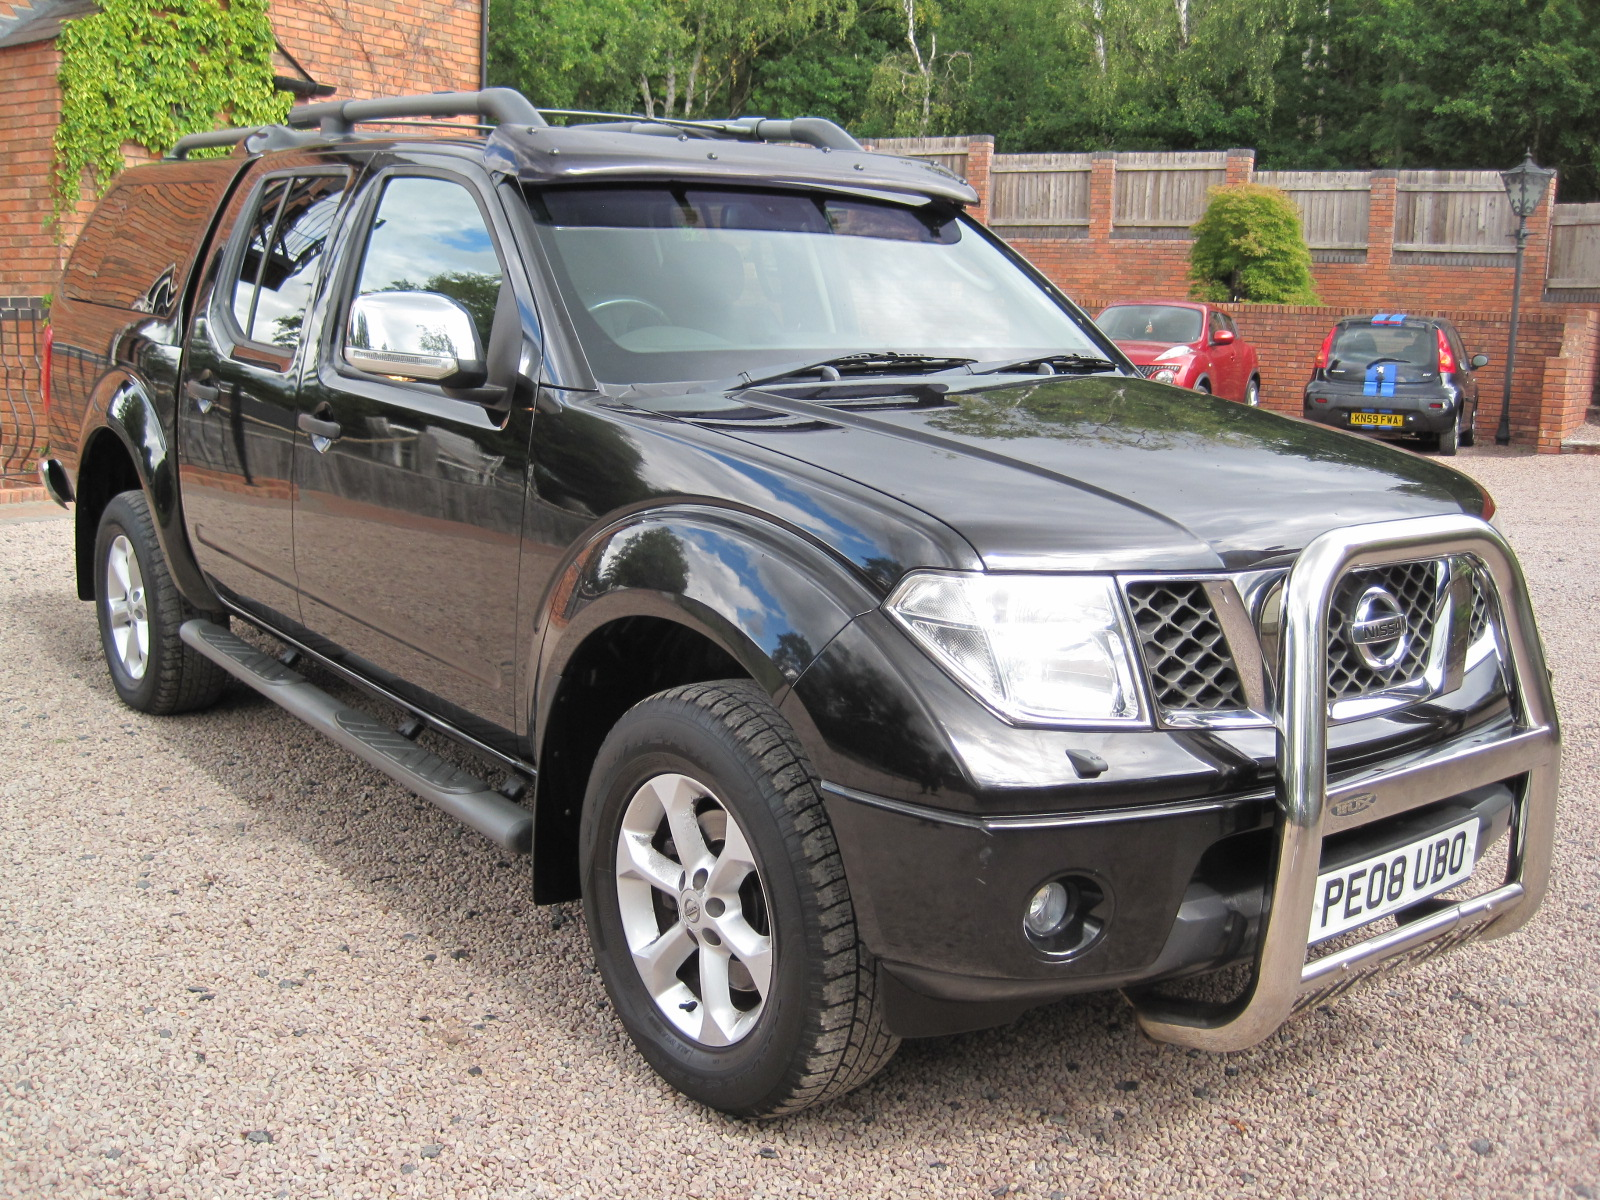 2008 08 Nissan Navara 2.5 dCi Long Way Down Expedition Double Cab Pickup 4dr VERY LOW MILES 65K PRISTINE! NO VAT!